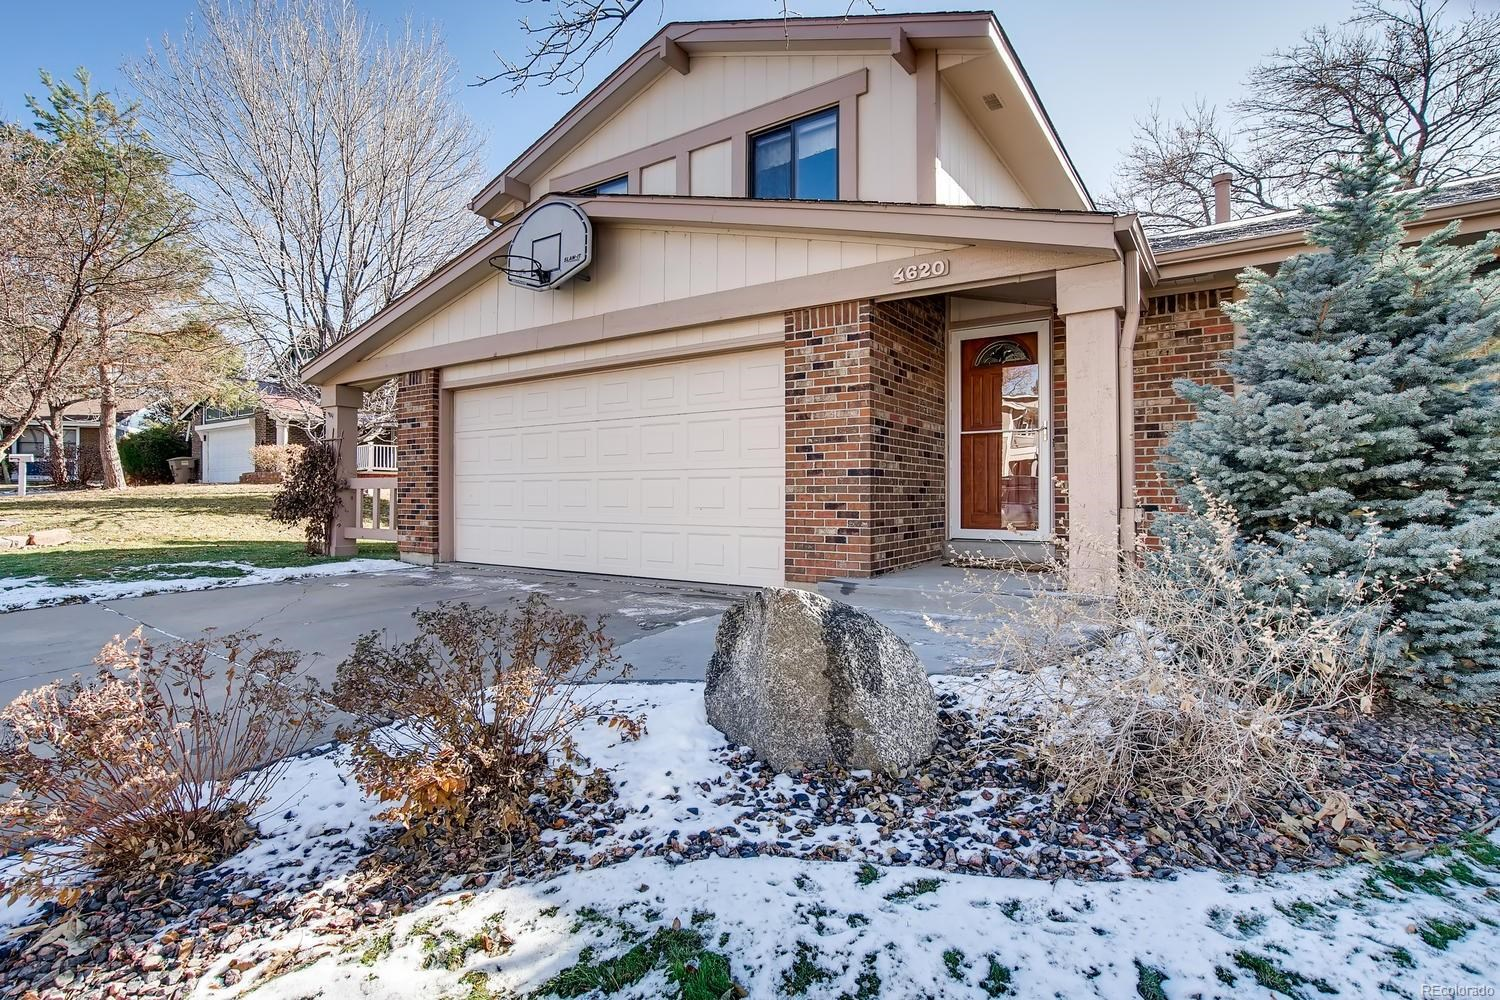 MLS# 2220629 - 2 - 4620 W 108th Place, Westminster, CO 80031